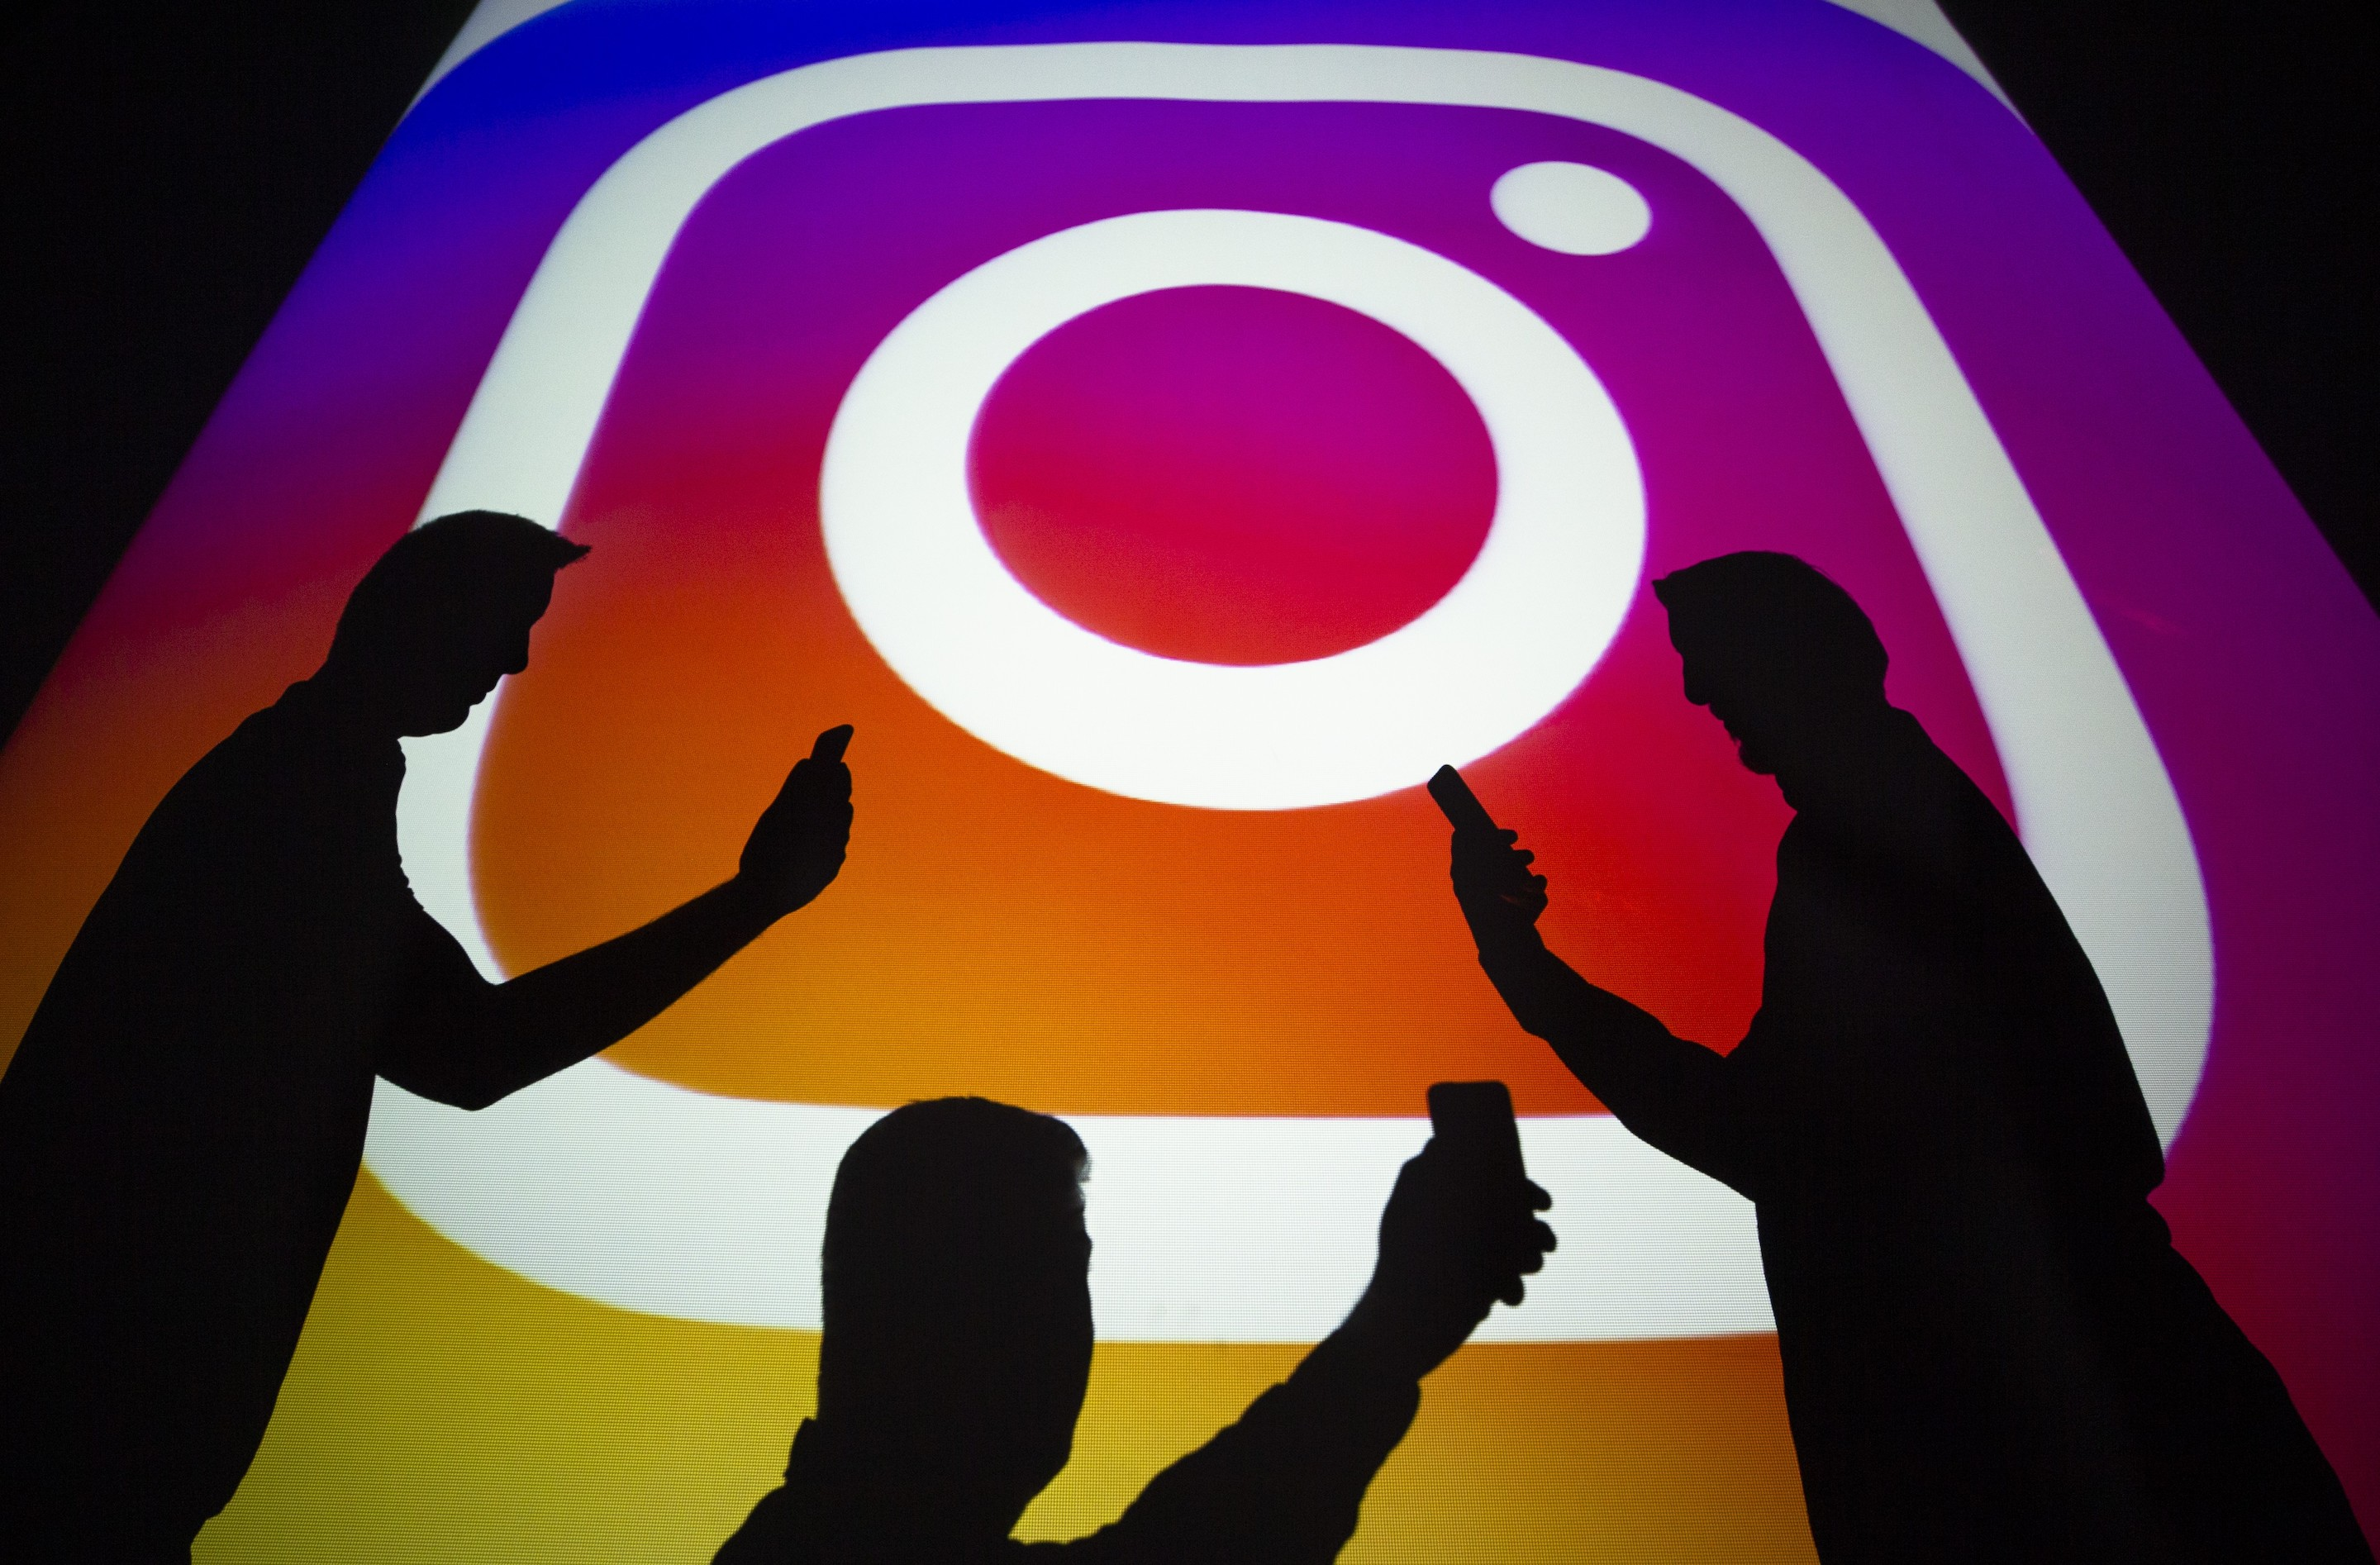 The fake Instagram privacy policy—similar to a Facebook hoax that's been circulating for a decade—fooled high profile account owners with millions of followers.